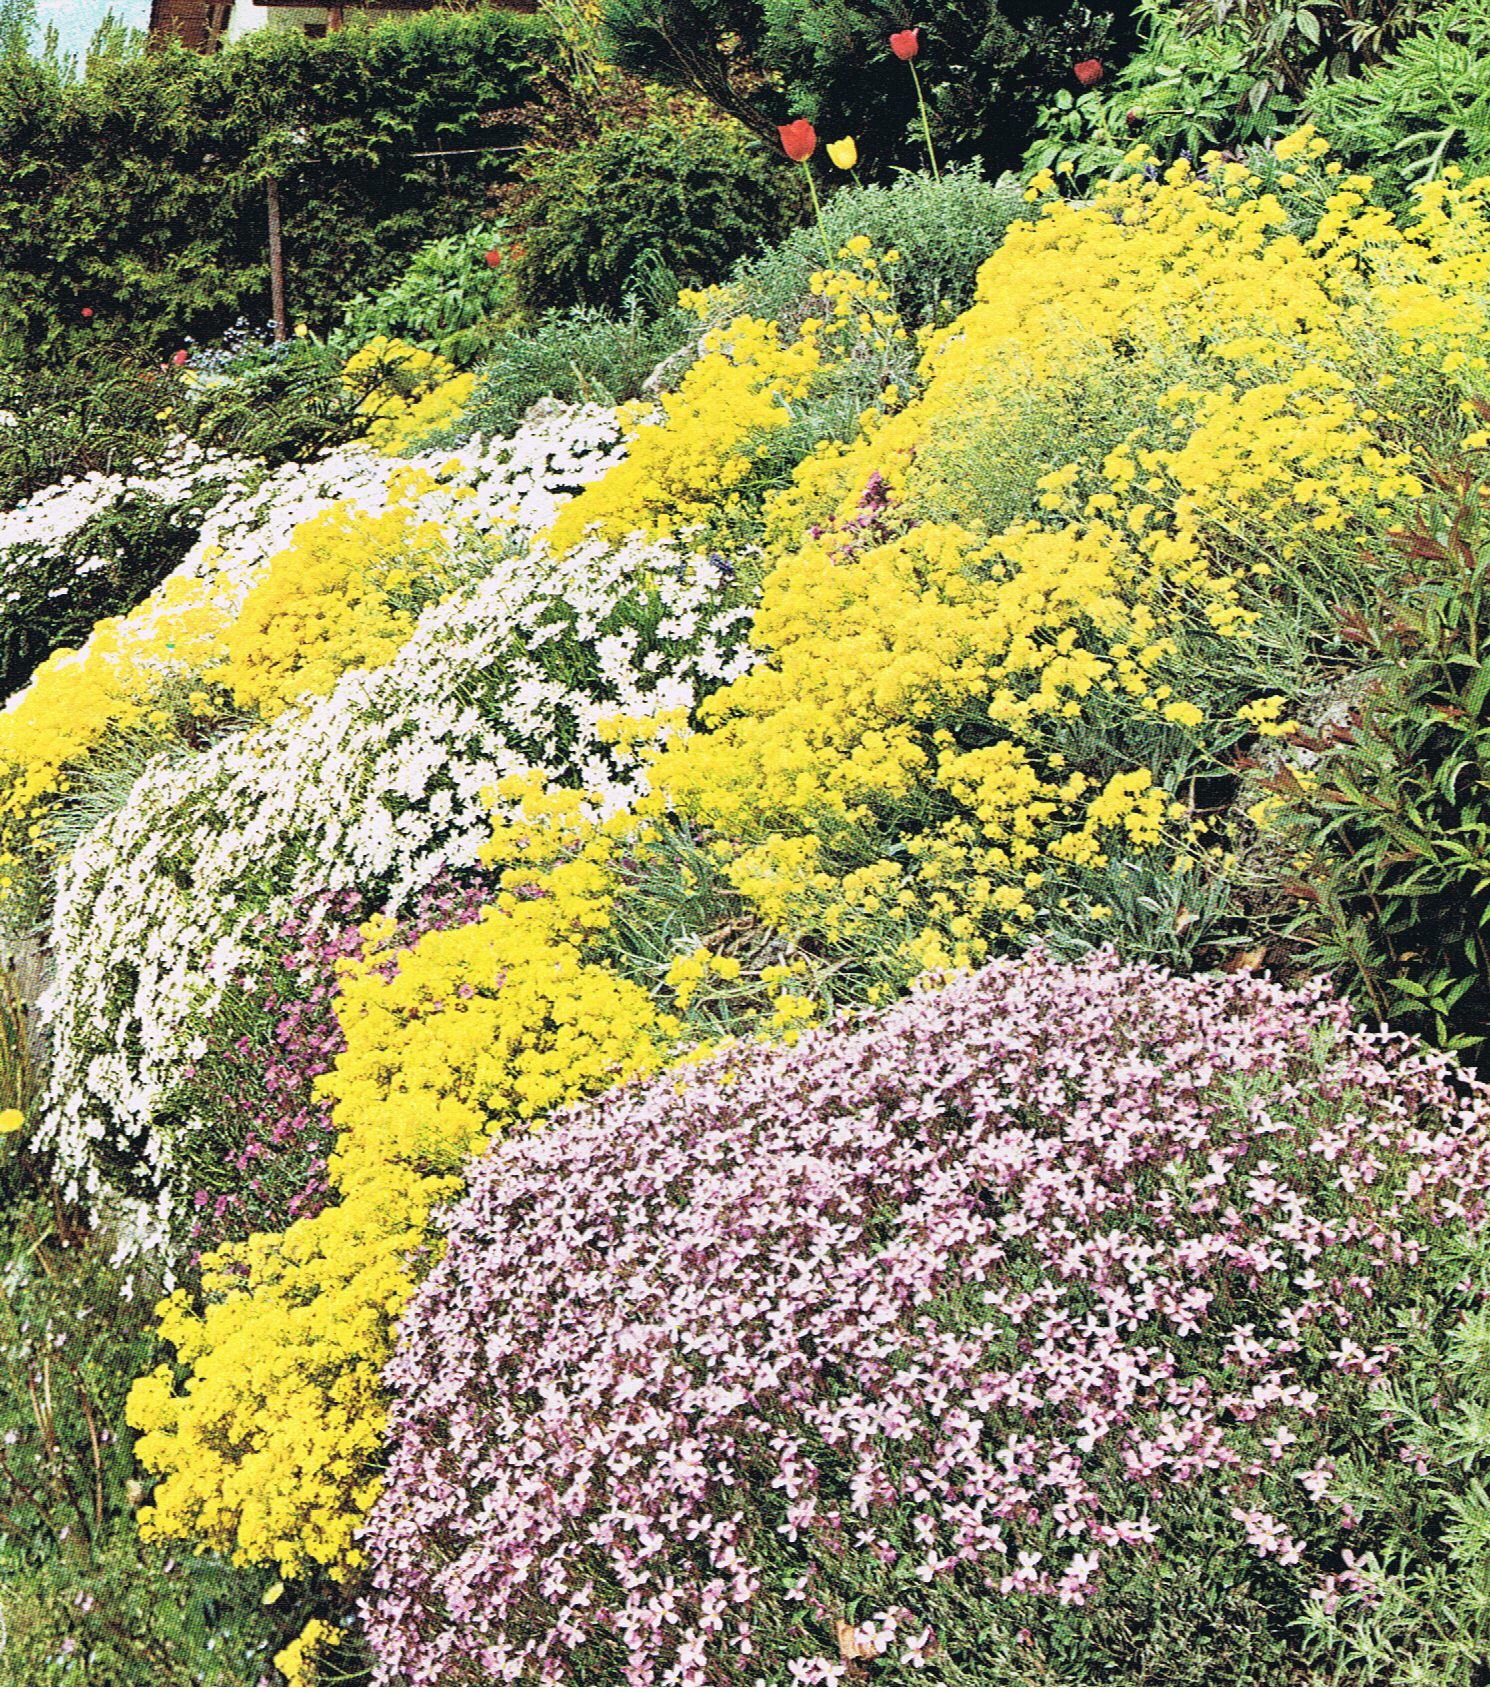 Groundcover Perennial Plants For Interest Texture And Soil Erosion